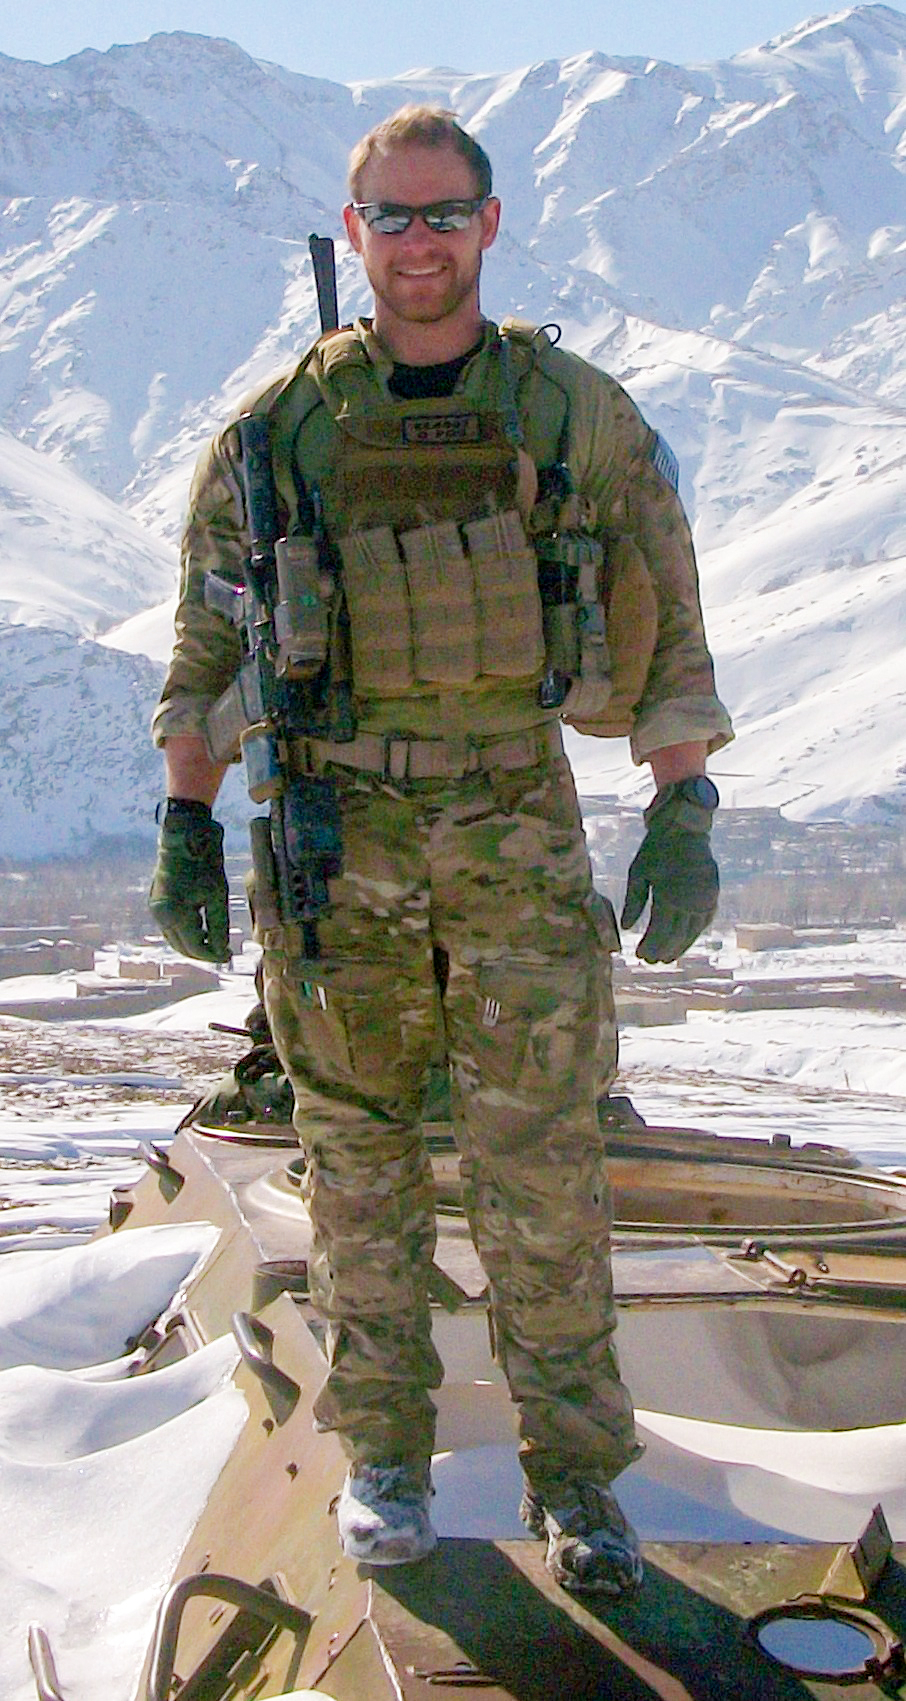 U.S. Army Capt. Andrew Pedersen-Keel, of South Miami, Florida, died March 11, 2013. The 28-year-old was assigned to 1st Battalion, 3rd Special Forces Group (Airborne), in Fort Bragg, North Carolina. Pedersen-Keel was fatally injured in Jalrez District, Afghanistan, from small-arms fire from an Afghan security-forces member. He is survived by his mother and stepfather, Helen Pedersen Keiser and Bob Keiser; father, Henry Keel; sister, Mary Elizabeth Keel; and fiancèe, Celeste Pizza.